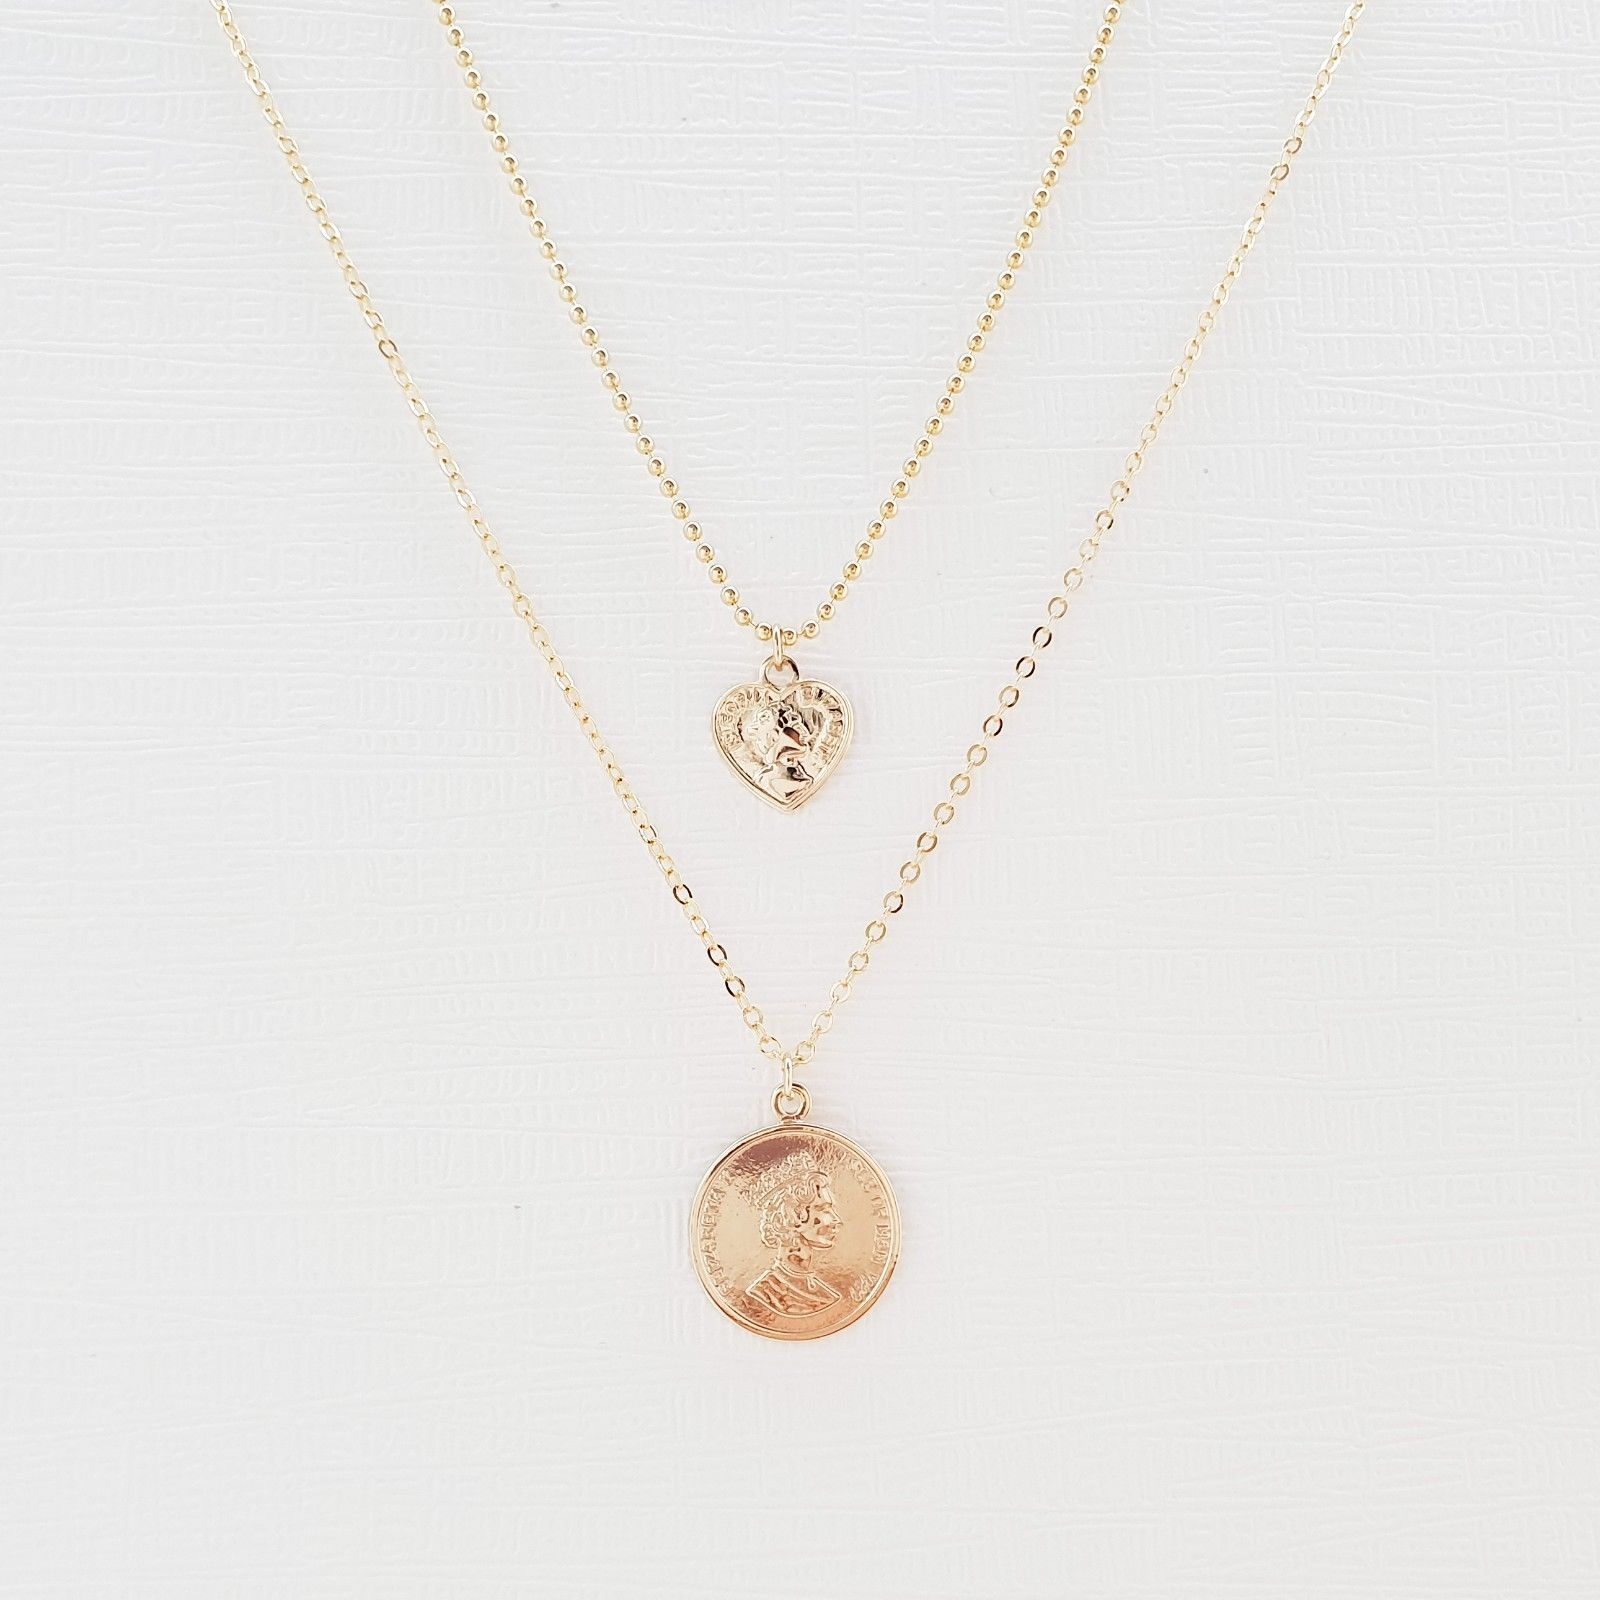 Multi-Strand Coin Heart Pendant Double Necklace Ball Chain Choker Gold Tone N23